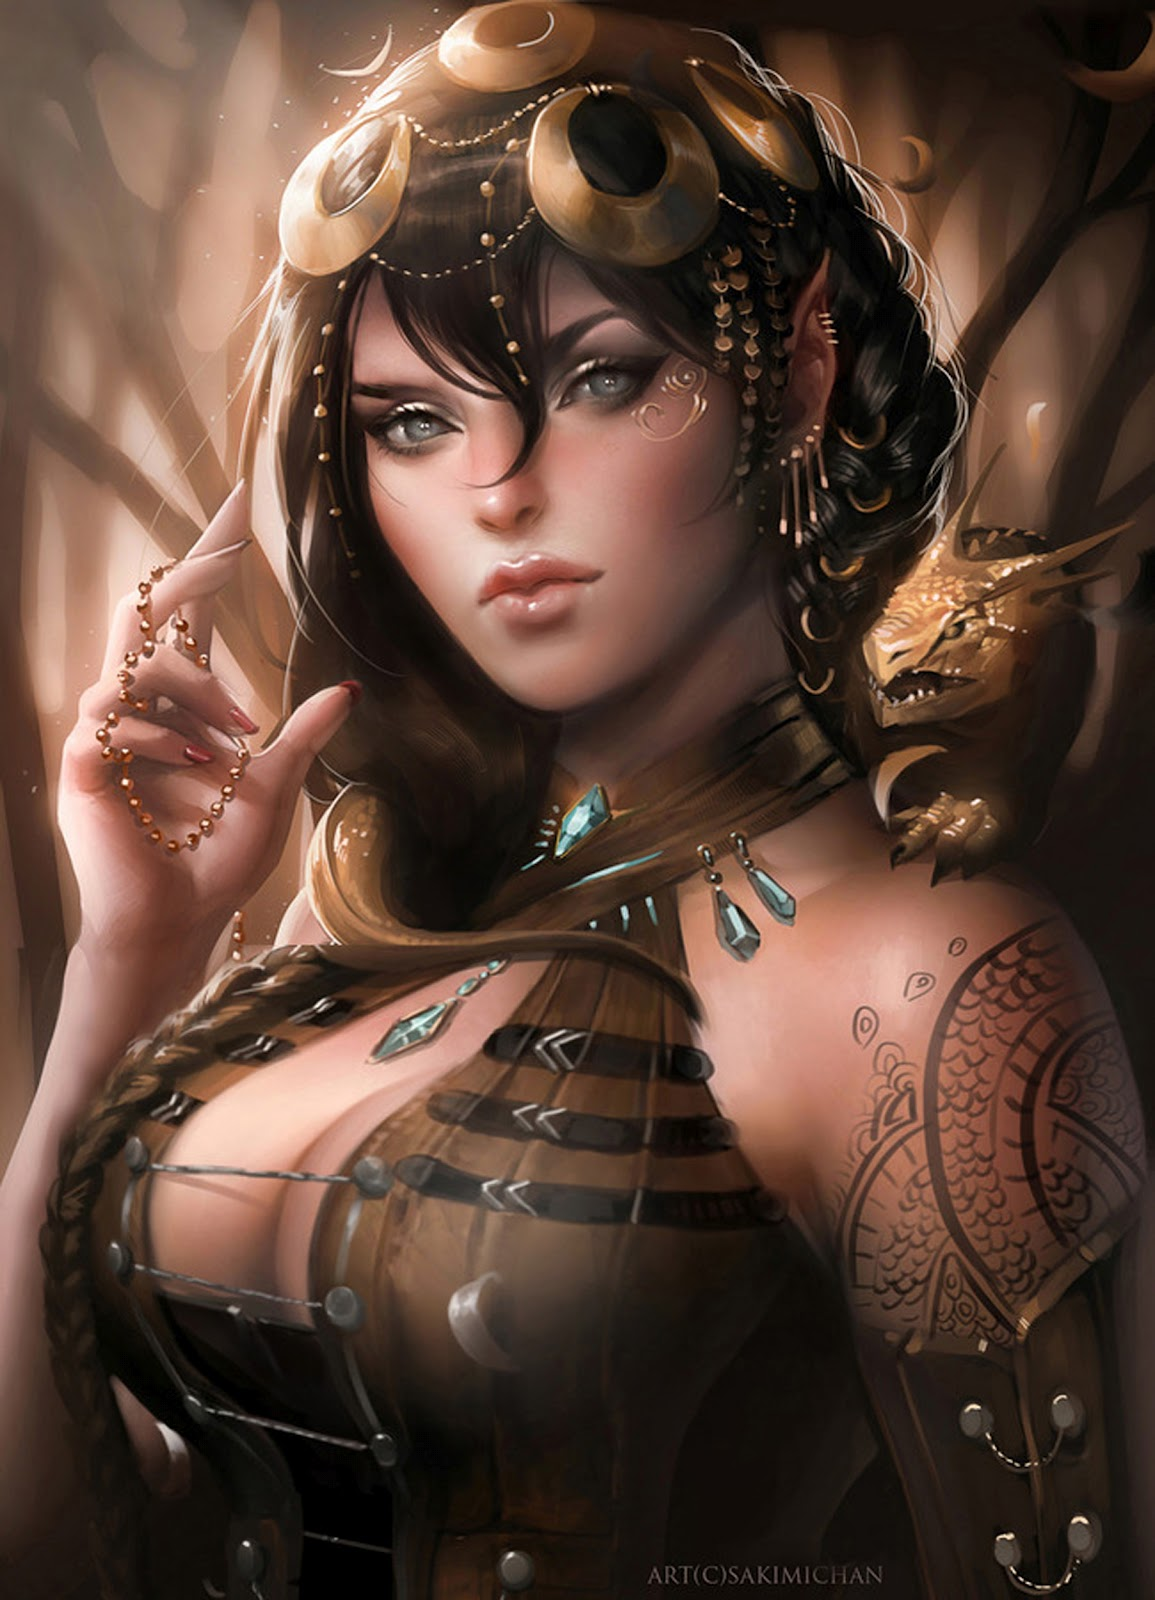 Have thought erotic fantasy women art